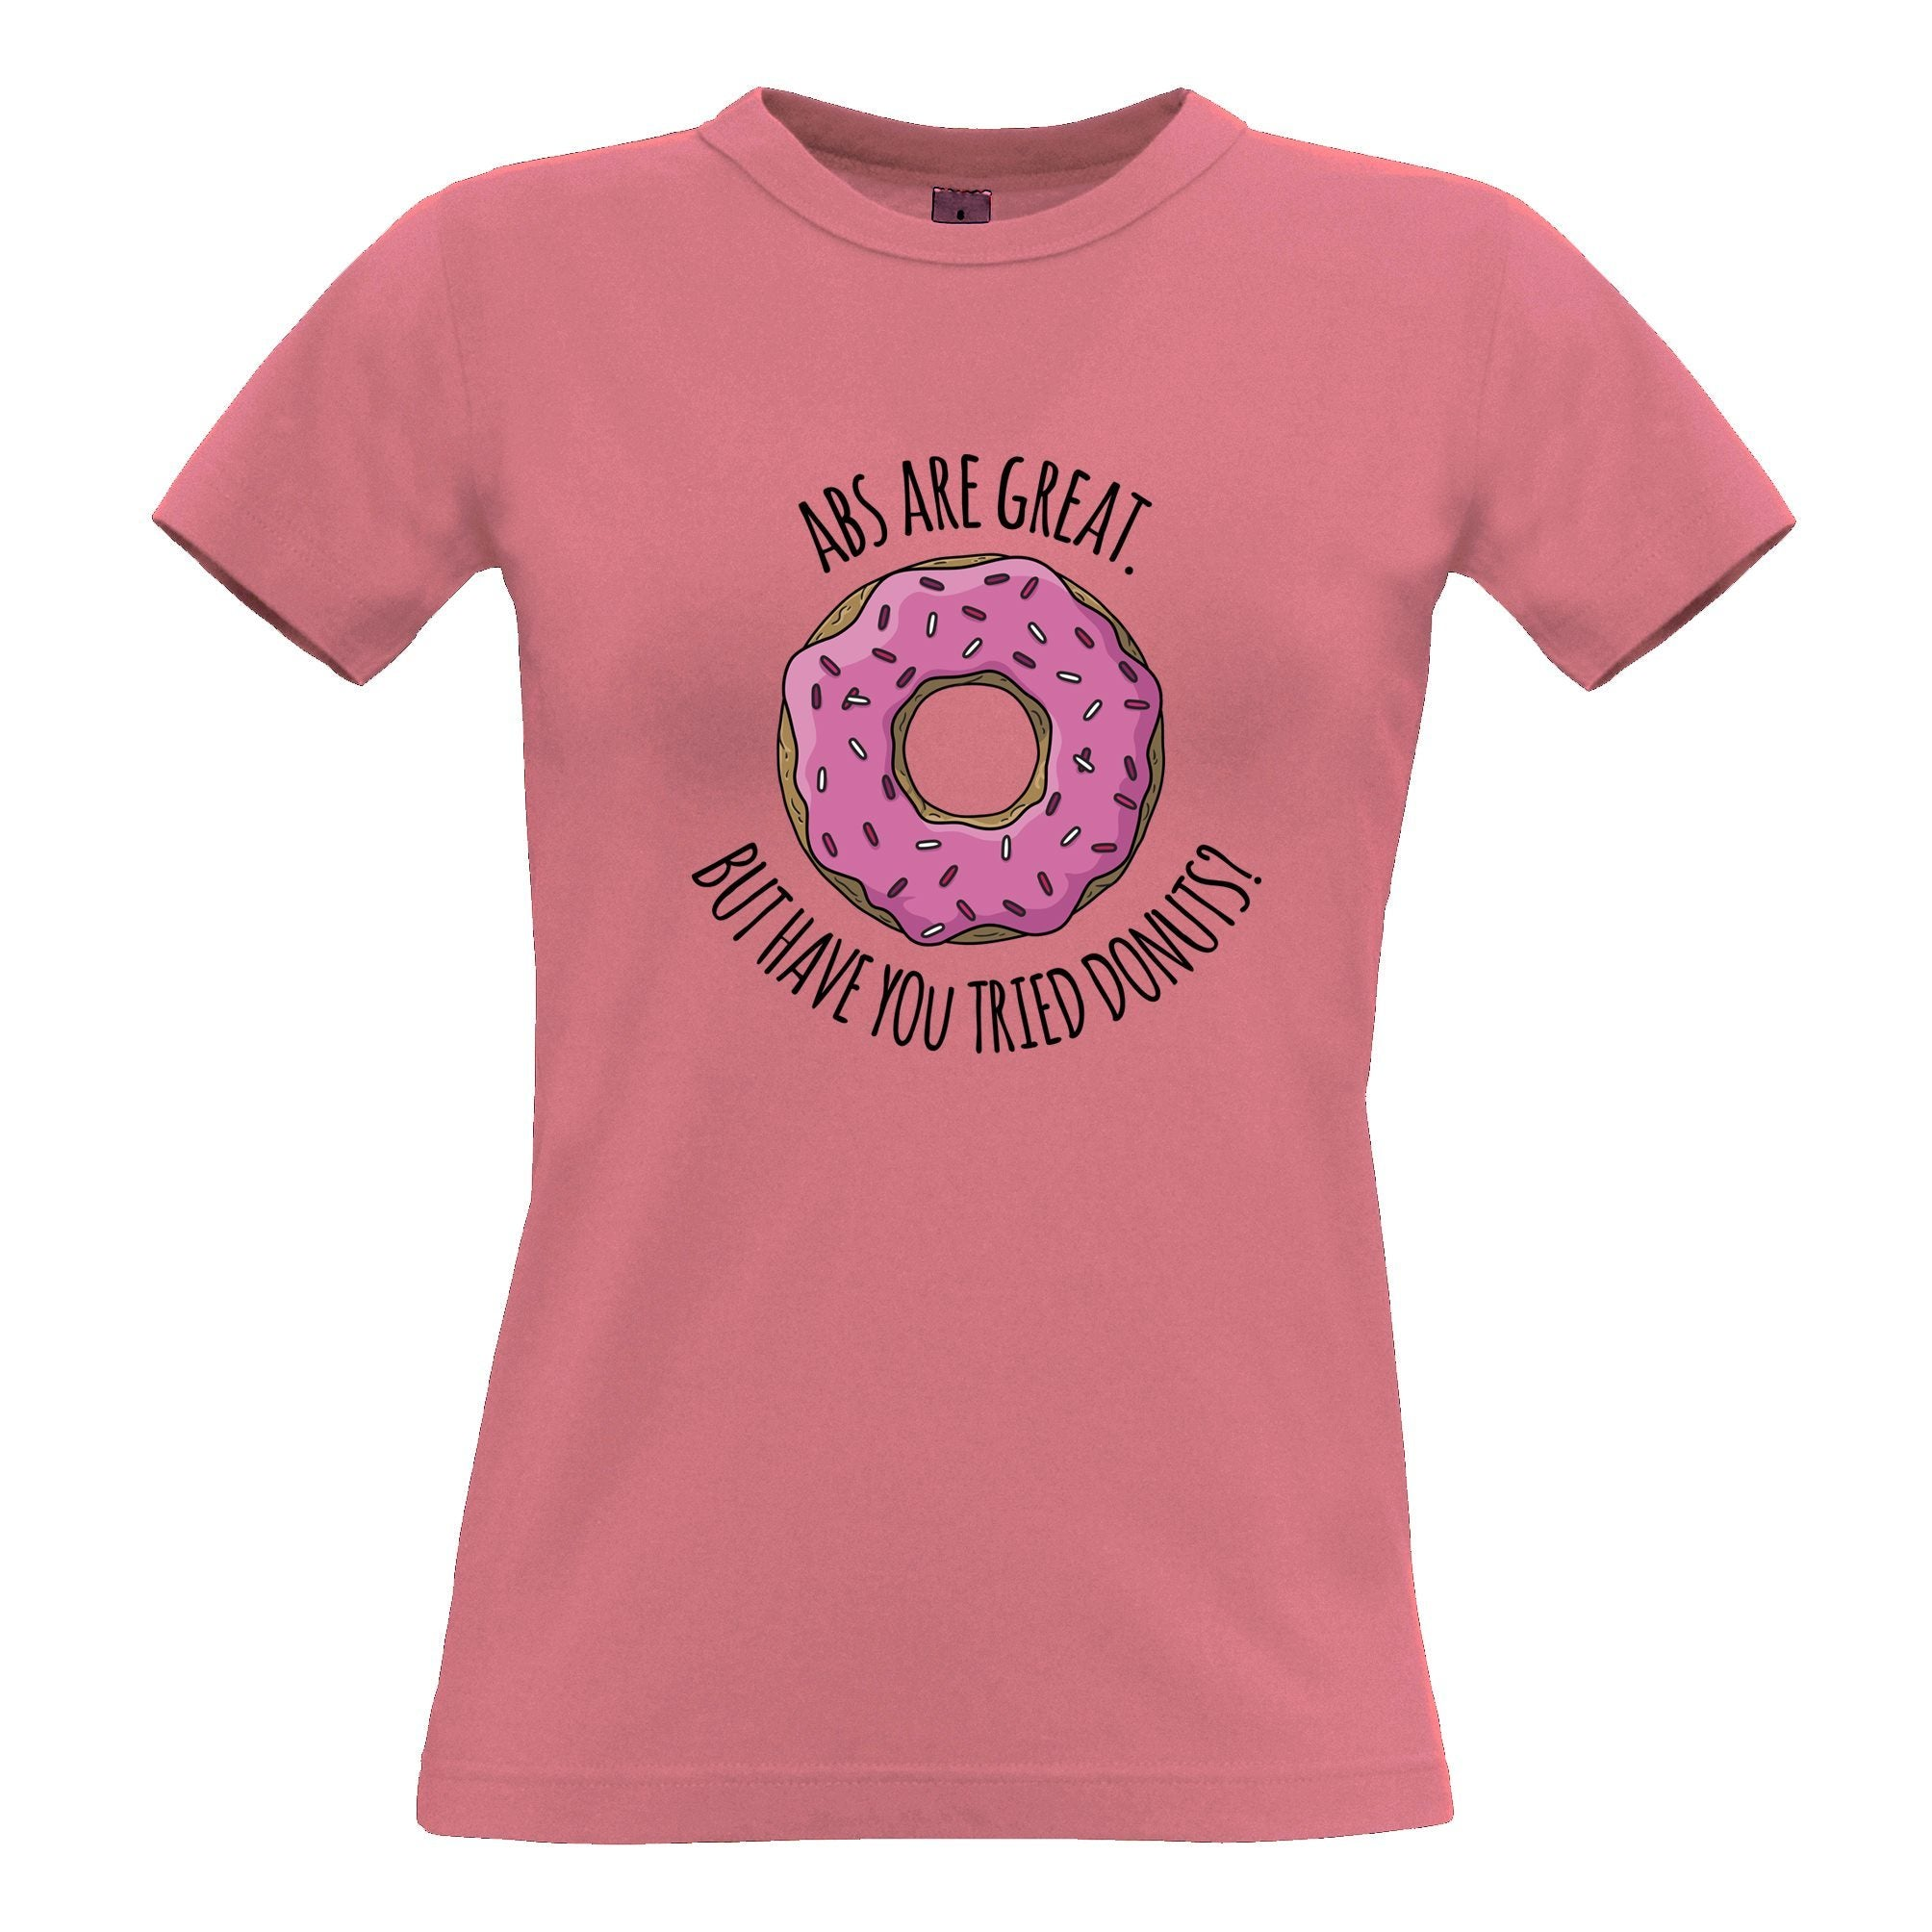 Joke Womens TShirt Abs Are Great But Have You Tried Donuts?